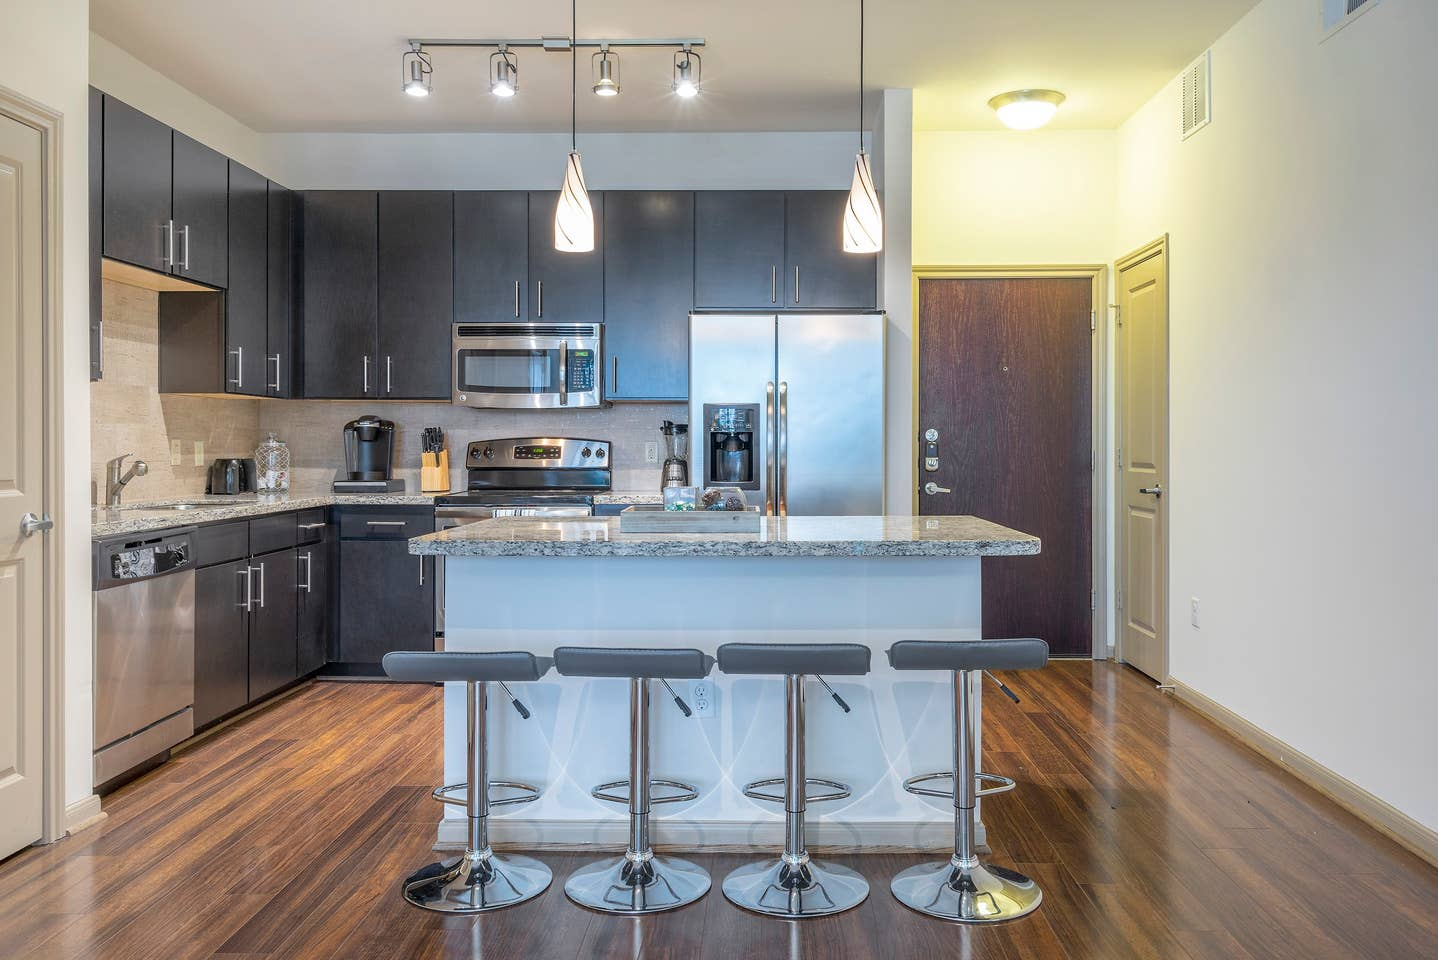 LUXURIOUS MODERN/FULLY EQUIPPED MIDTOWN COZY CONDO - ⭐⭐⭐⭐⭐ photo 23914518